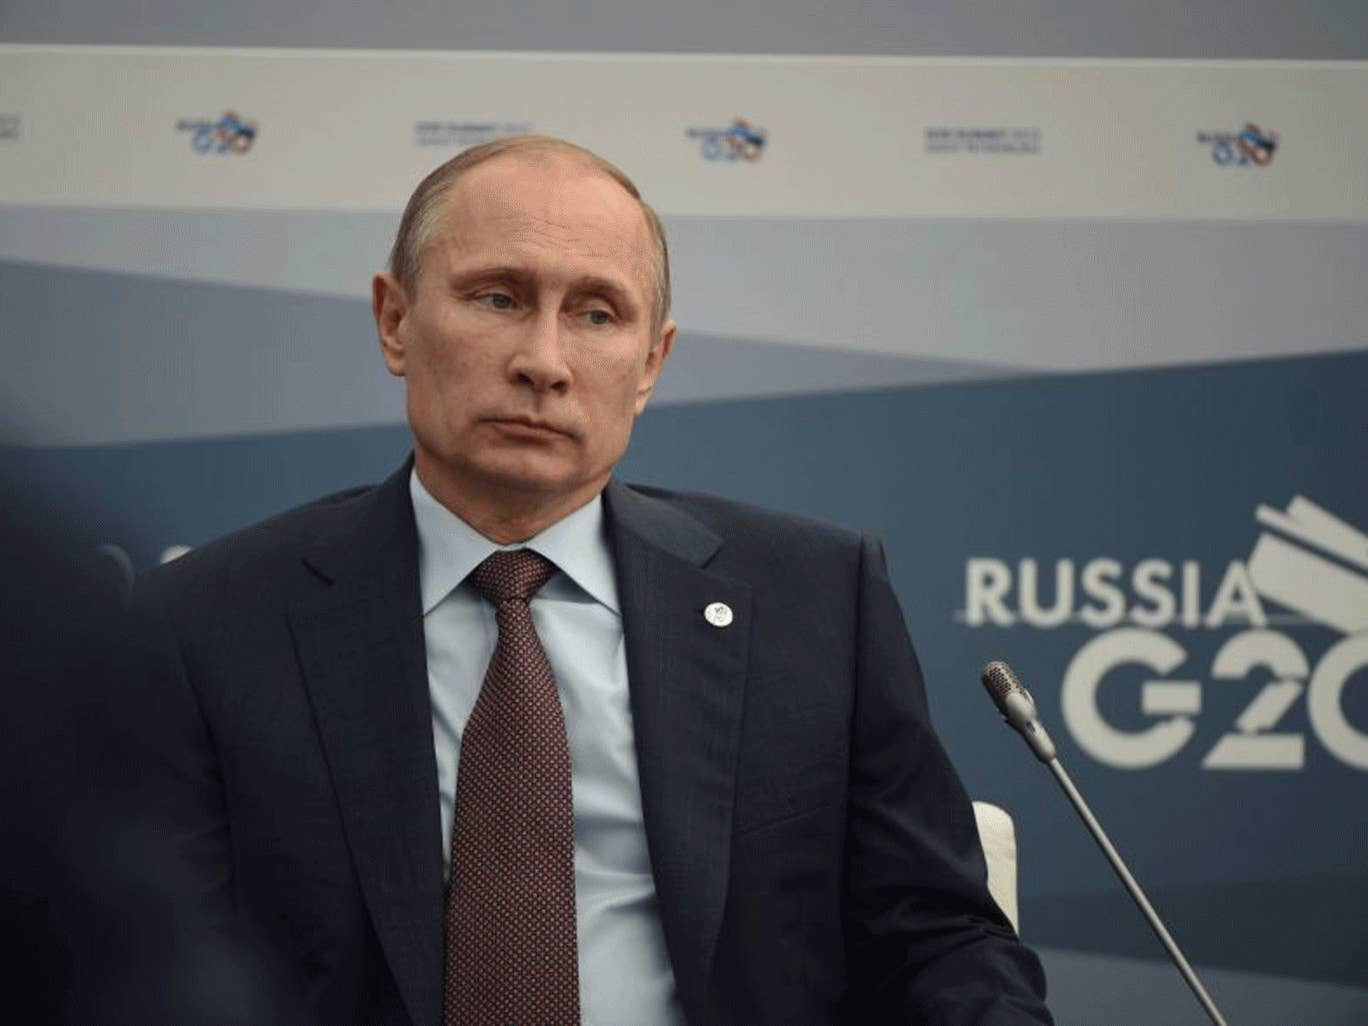 Vladimir Putin has said that Russia will not get militarily involved in Syria